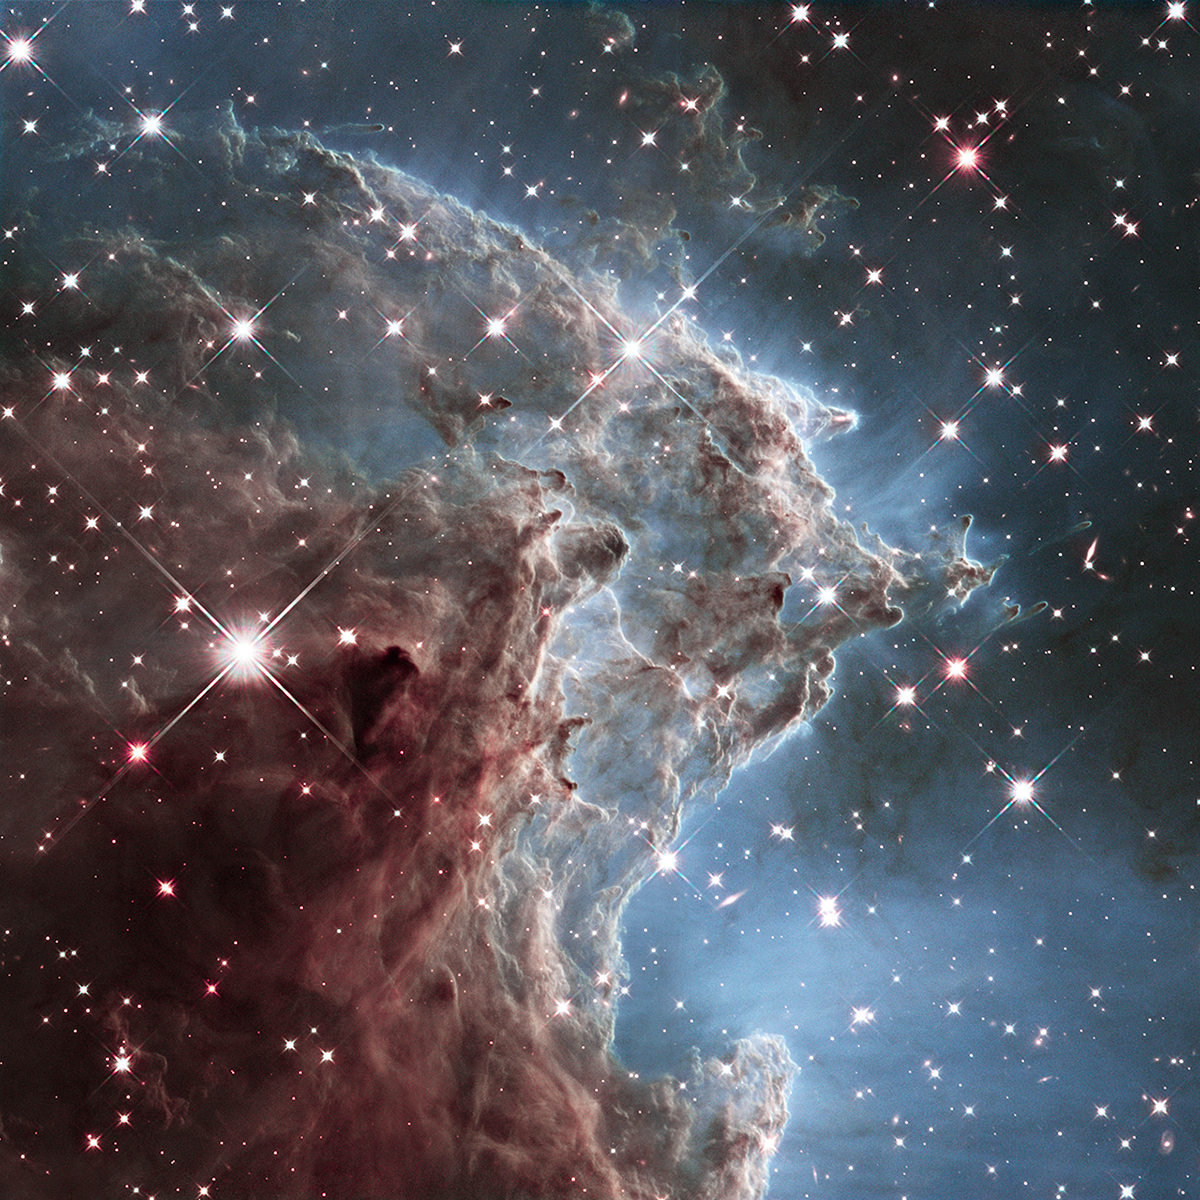 An infrared image of a small portion of the Monkey Head Nebula (also known as NGC 2174 and Sharpless Sh2-252) captured by the Hubble telescope, released on March 17, 2014. The nebula is a star-forming region that hosts dusky dust clouds silhouetted against glowing gas.